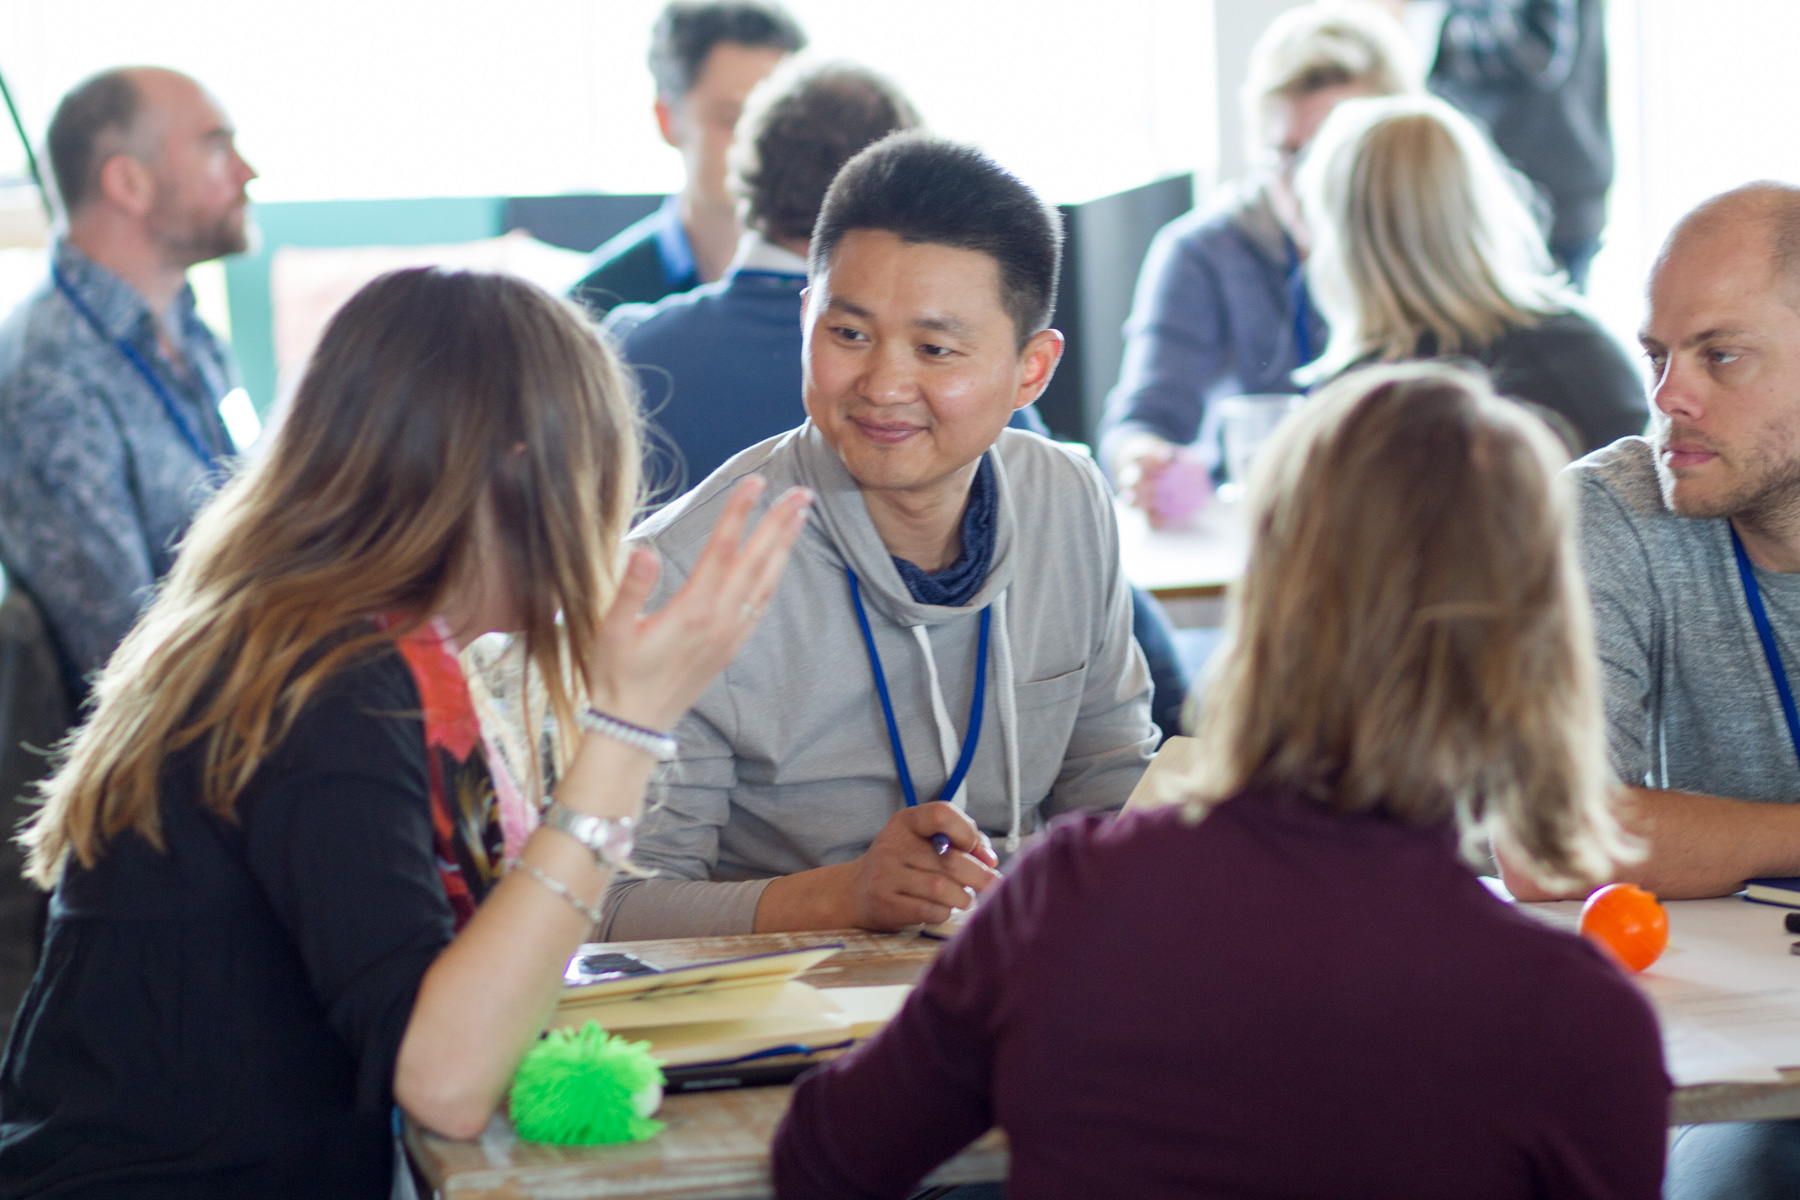 Holacracy Taster - During this half-day experiential workshop, you'll learn Holacracy practice fundamentals, see how organizations are structured, and get a hands-on experience using the meeting formats.